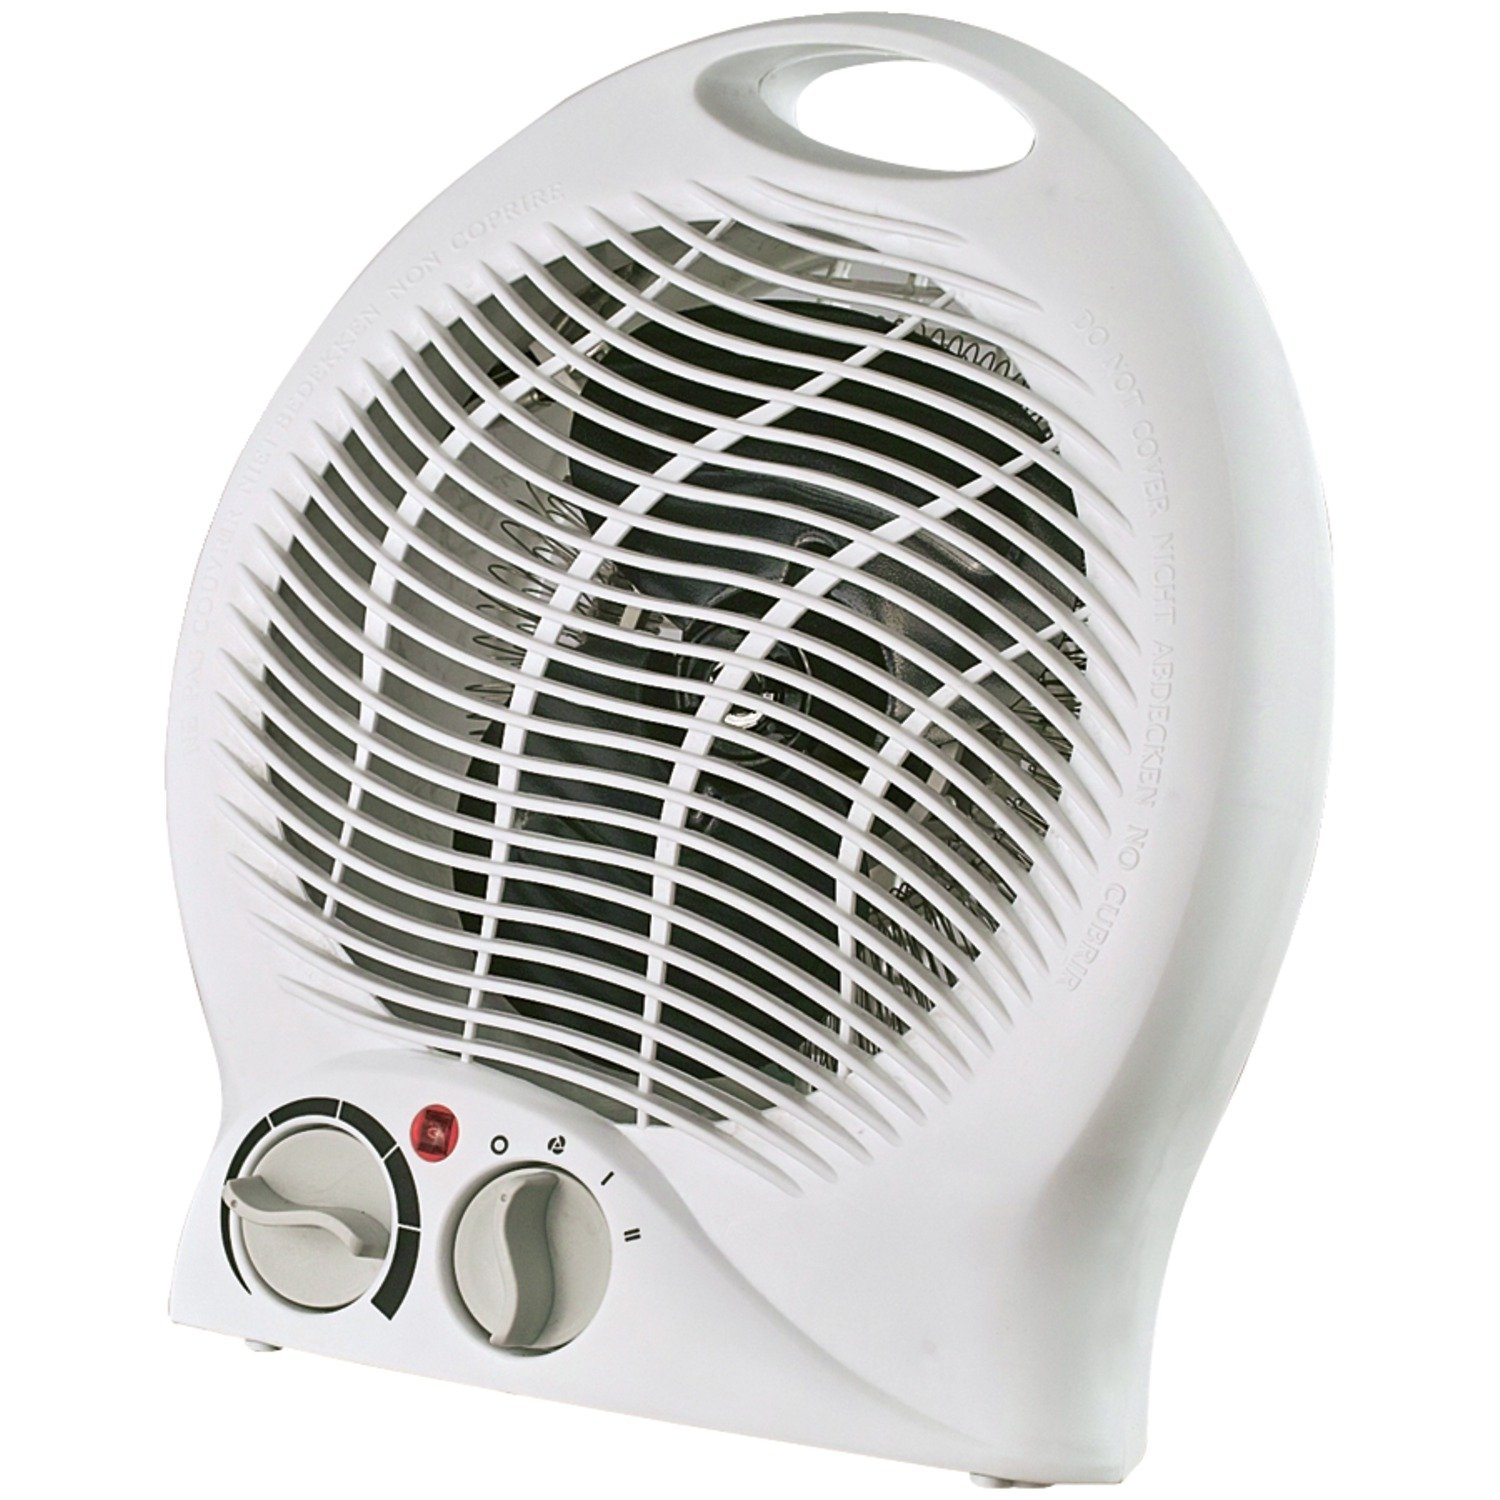 Optimus H-1322 Portable 2-Speed Fan Heater with Thermostat by Optimus